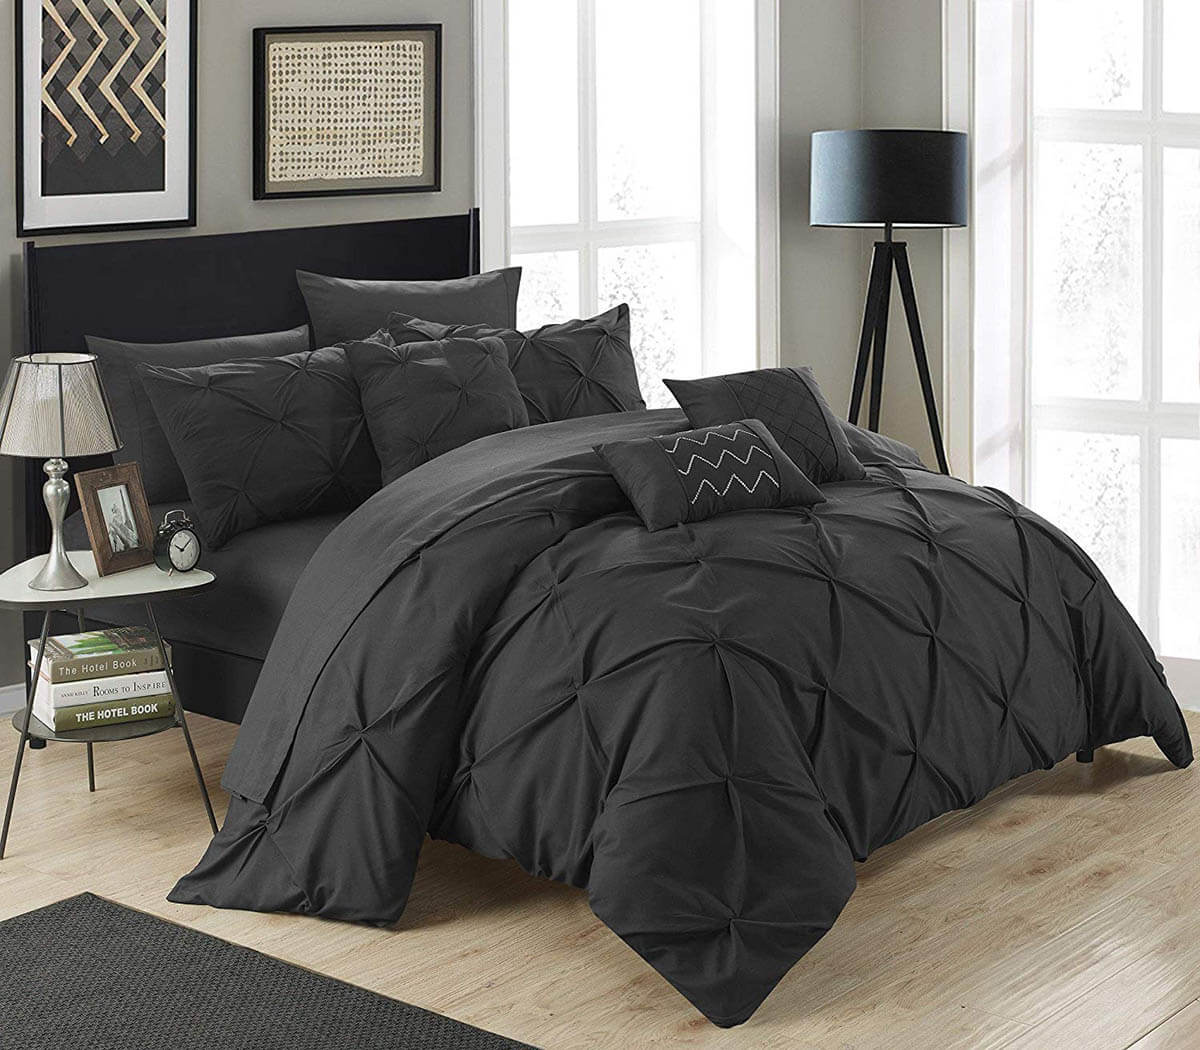 Grey and Black Color Scheme Bedroom Designs